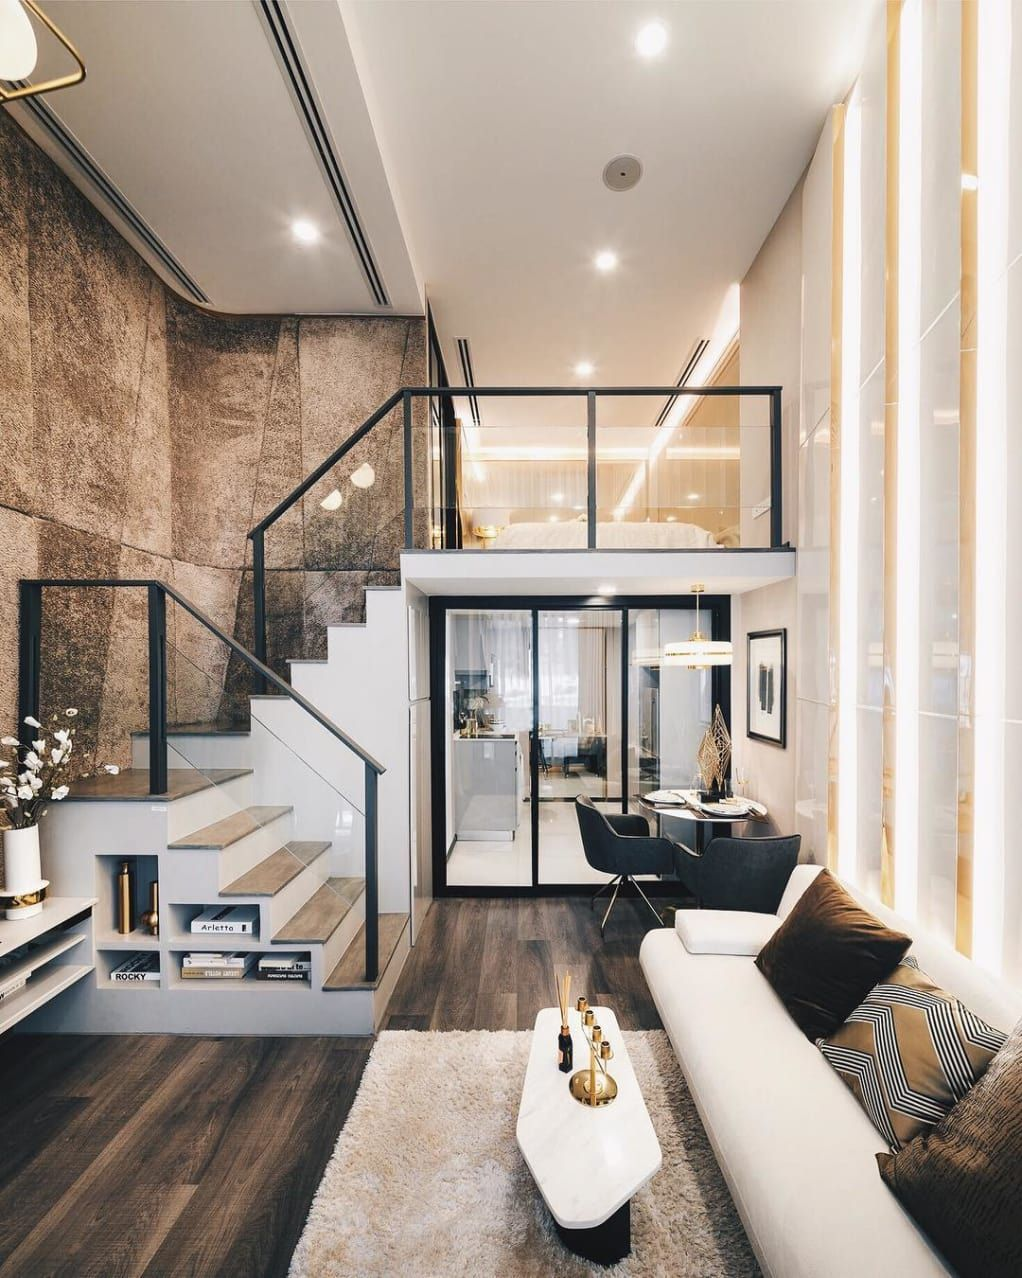 Minimal Interior Design Inspiration  175  UltraLinx